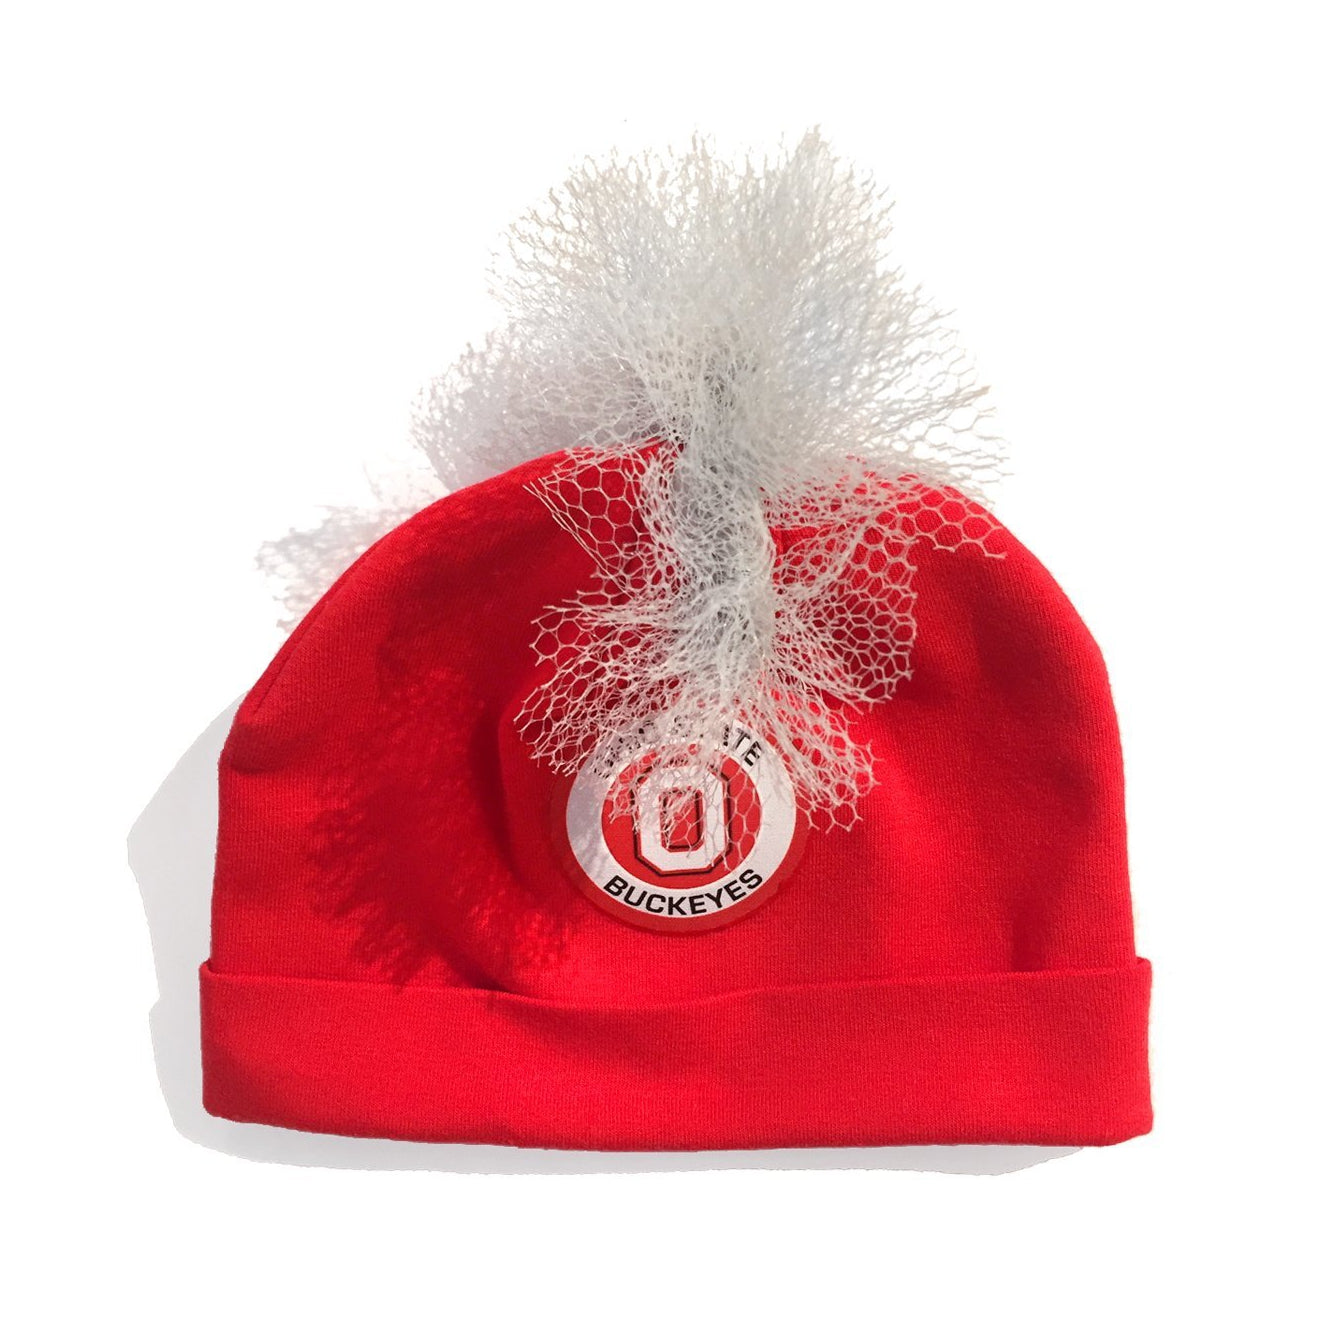 Ohio State University Red Buckeyes Mohawk Hat